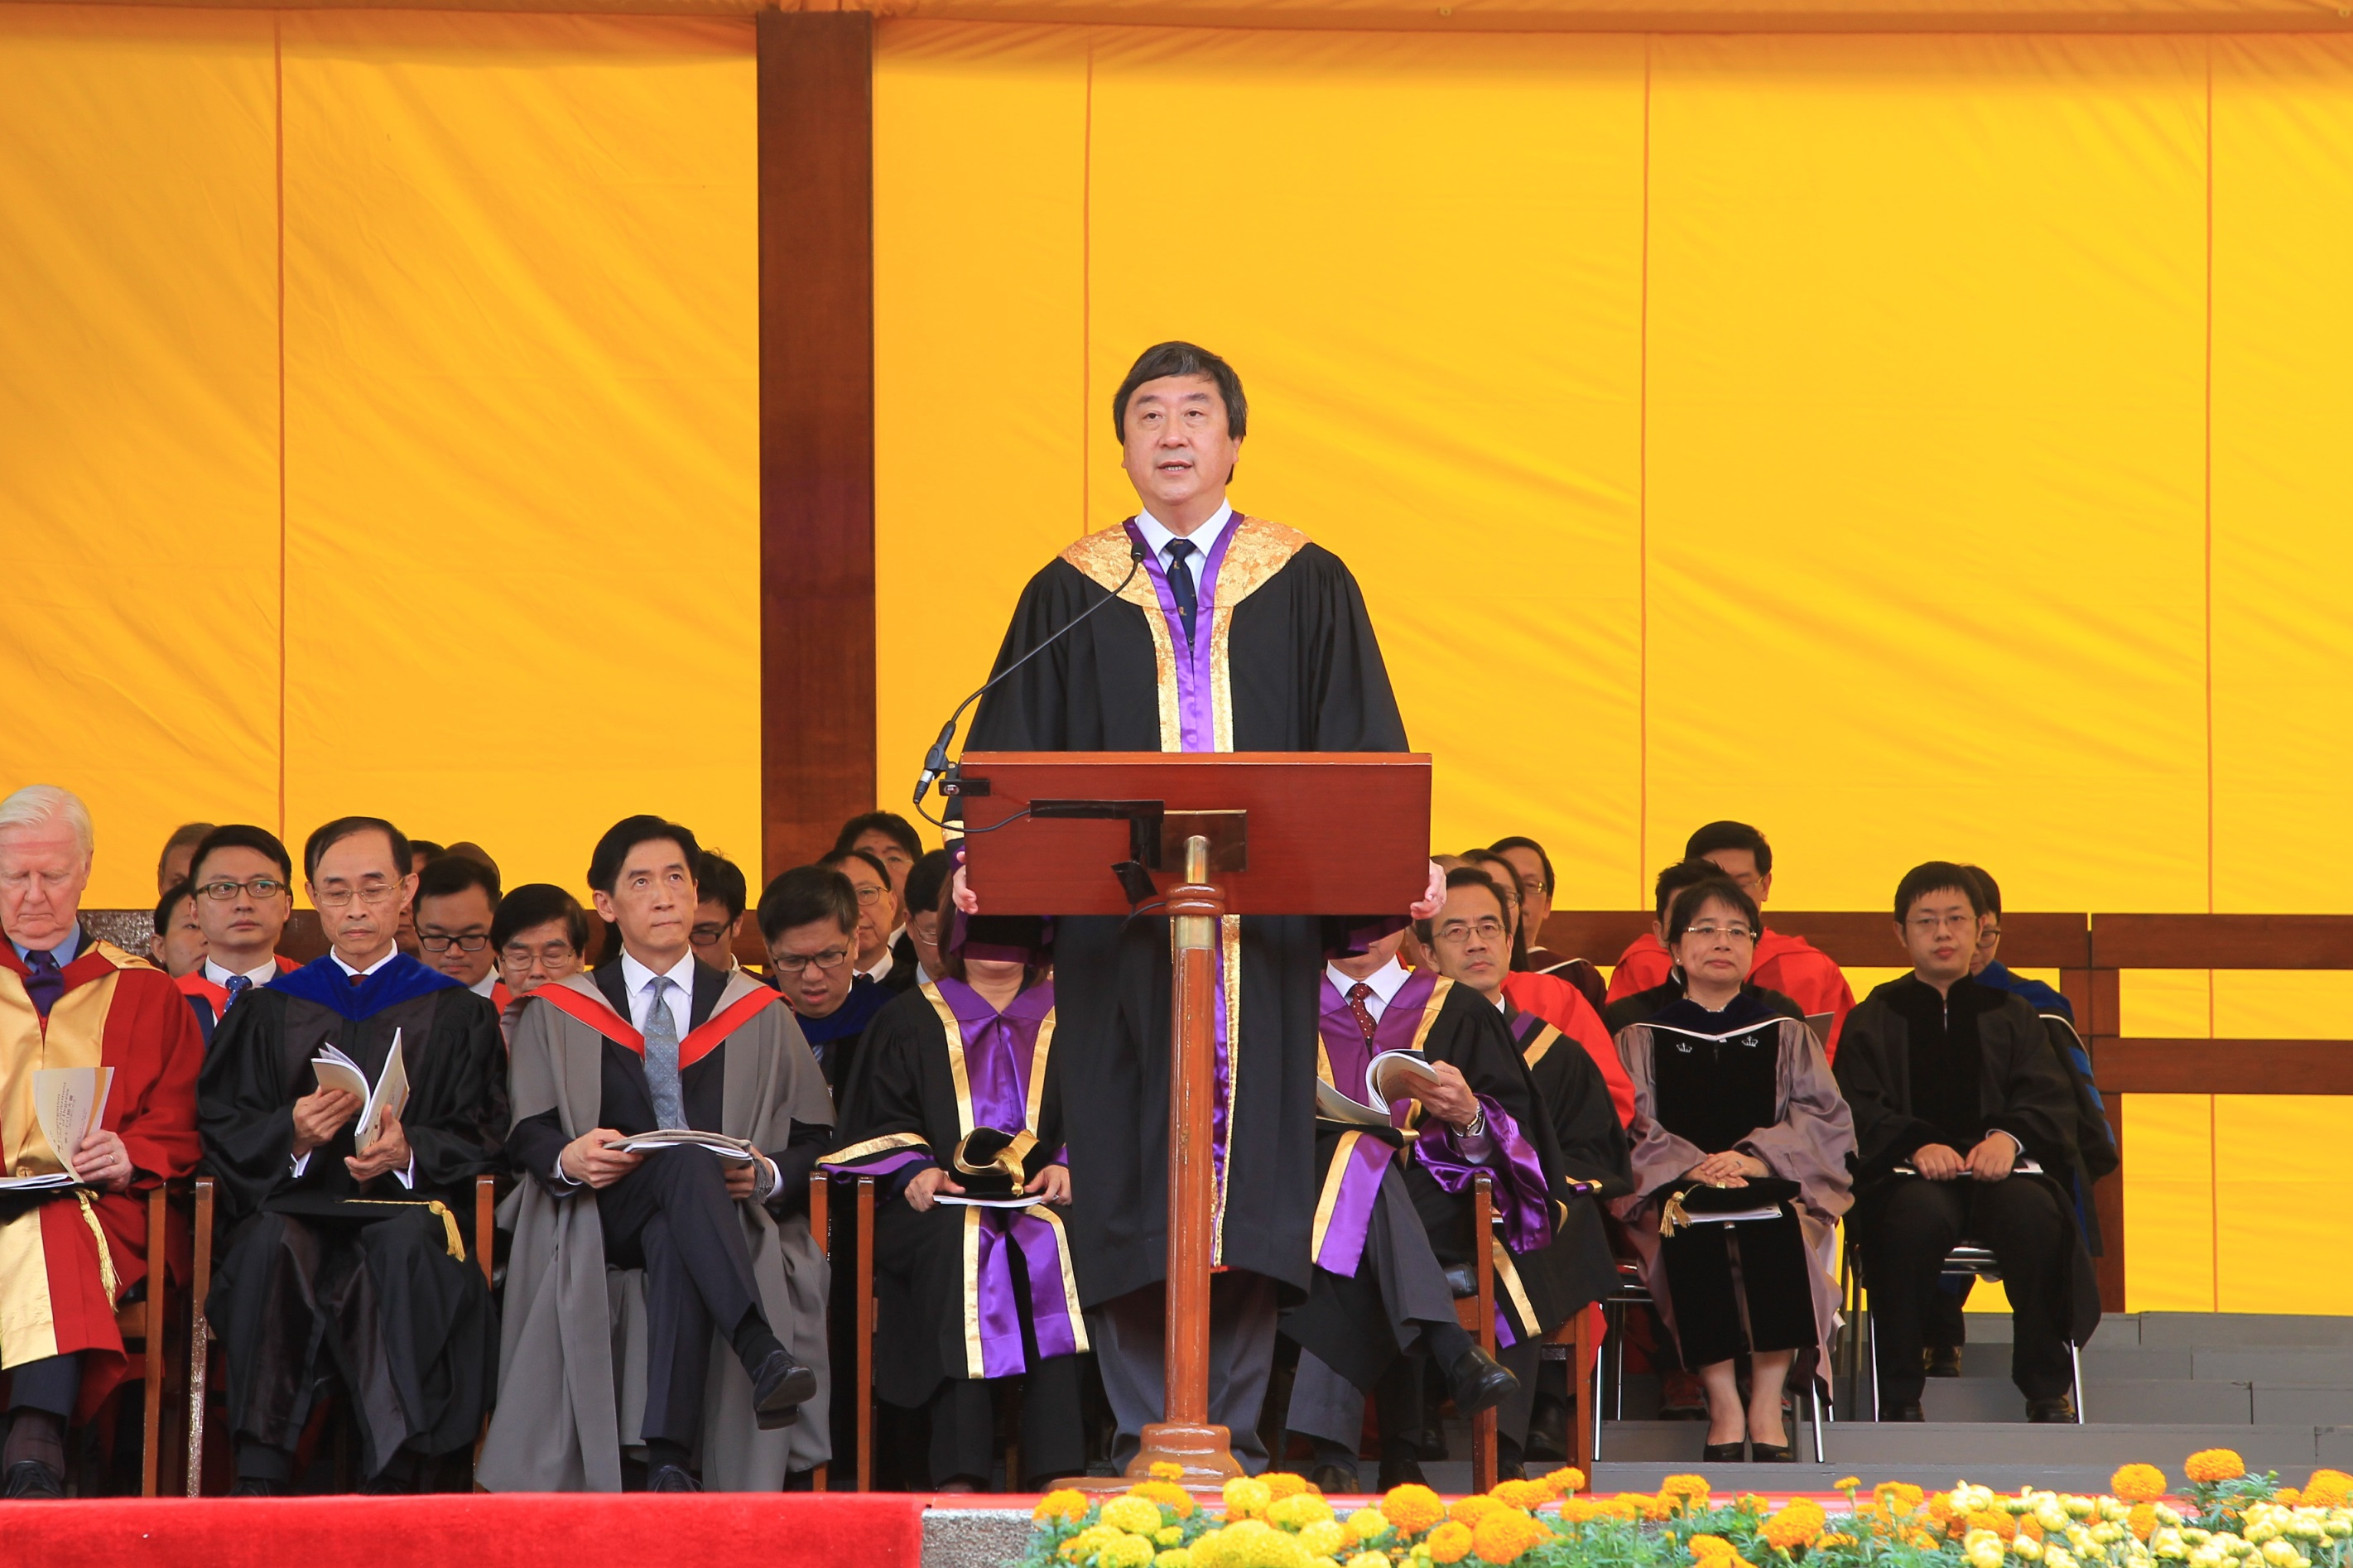 Prof. Joseph Sung, CUHK Vice-Chancellor delivers an address.